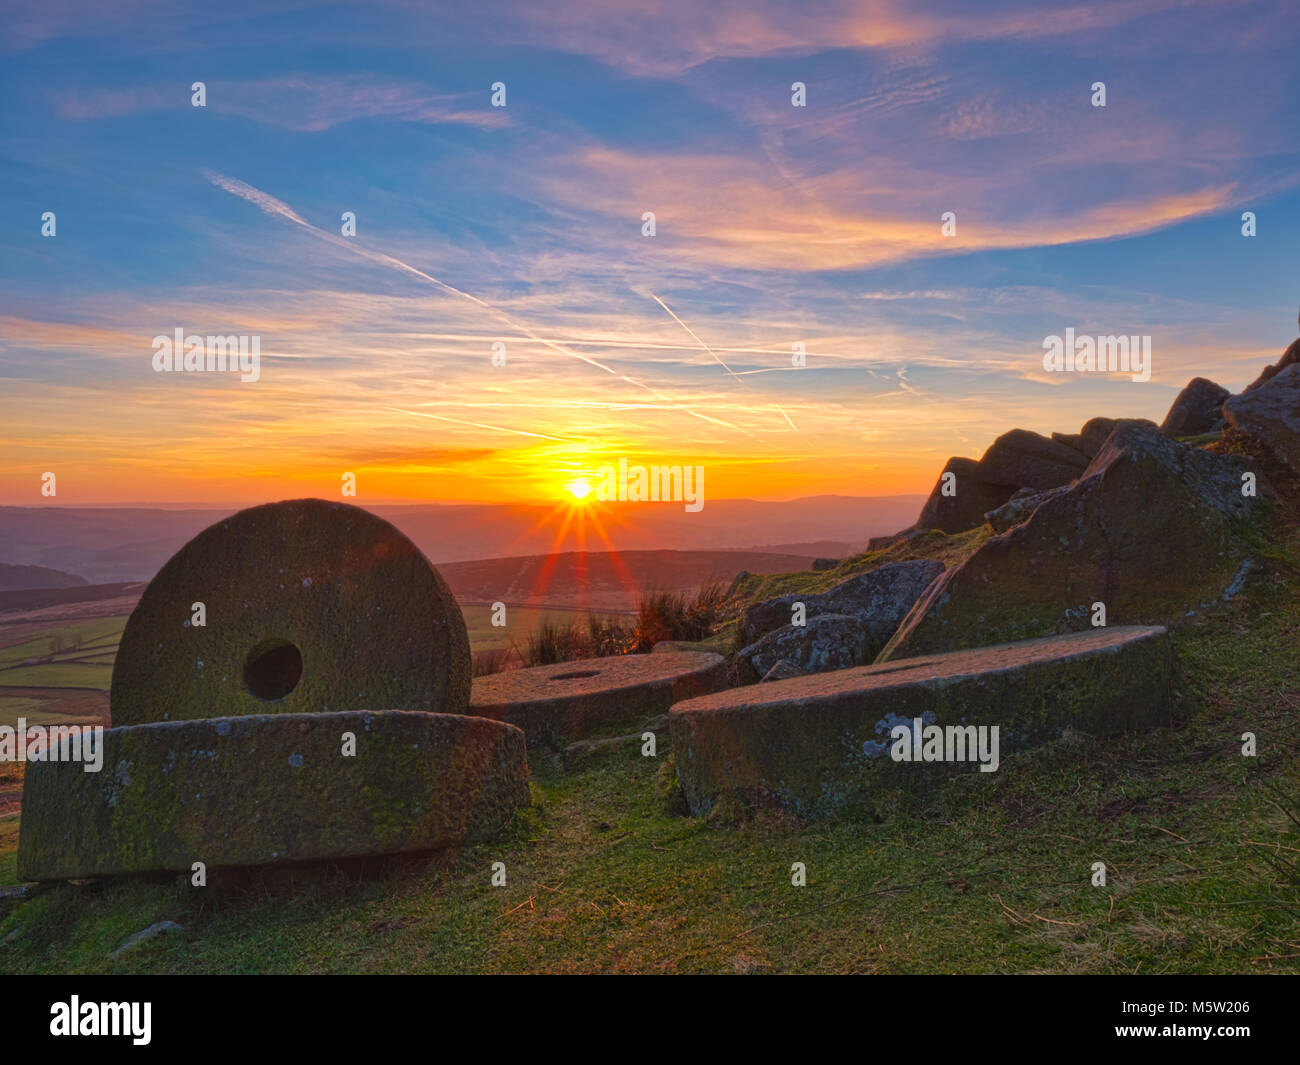 spectacular sunset over the millstones at Stanage Edge near Hathersage, Peak District National Park, Derbyshire - Stock Image